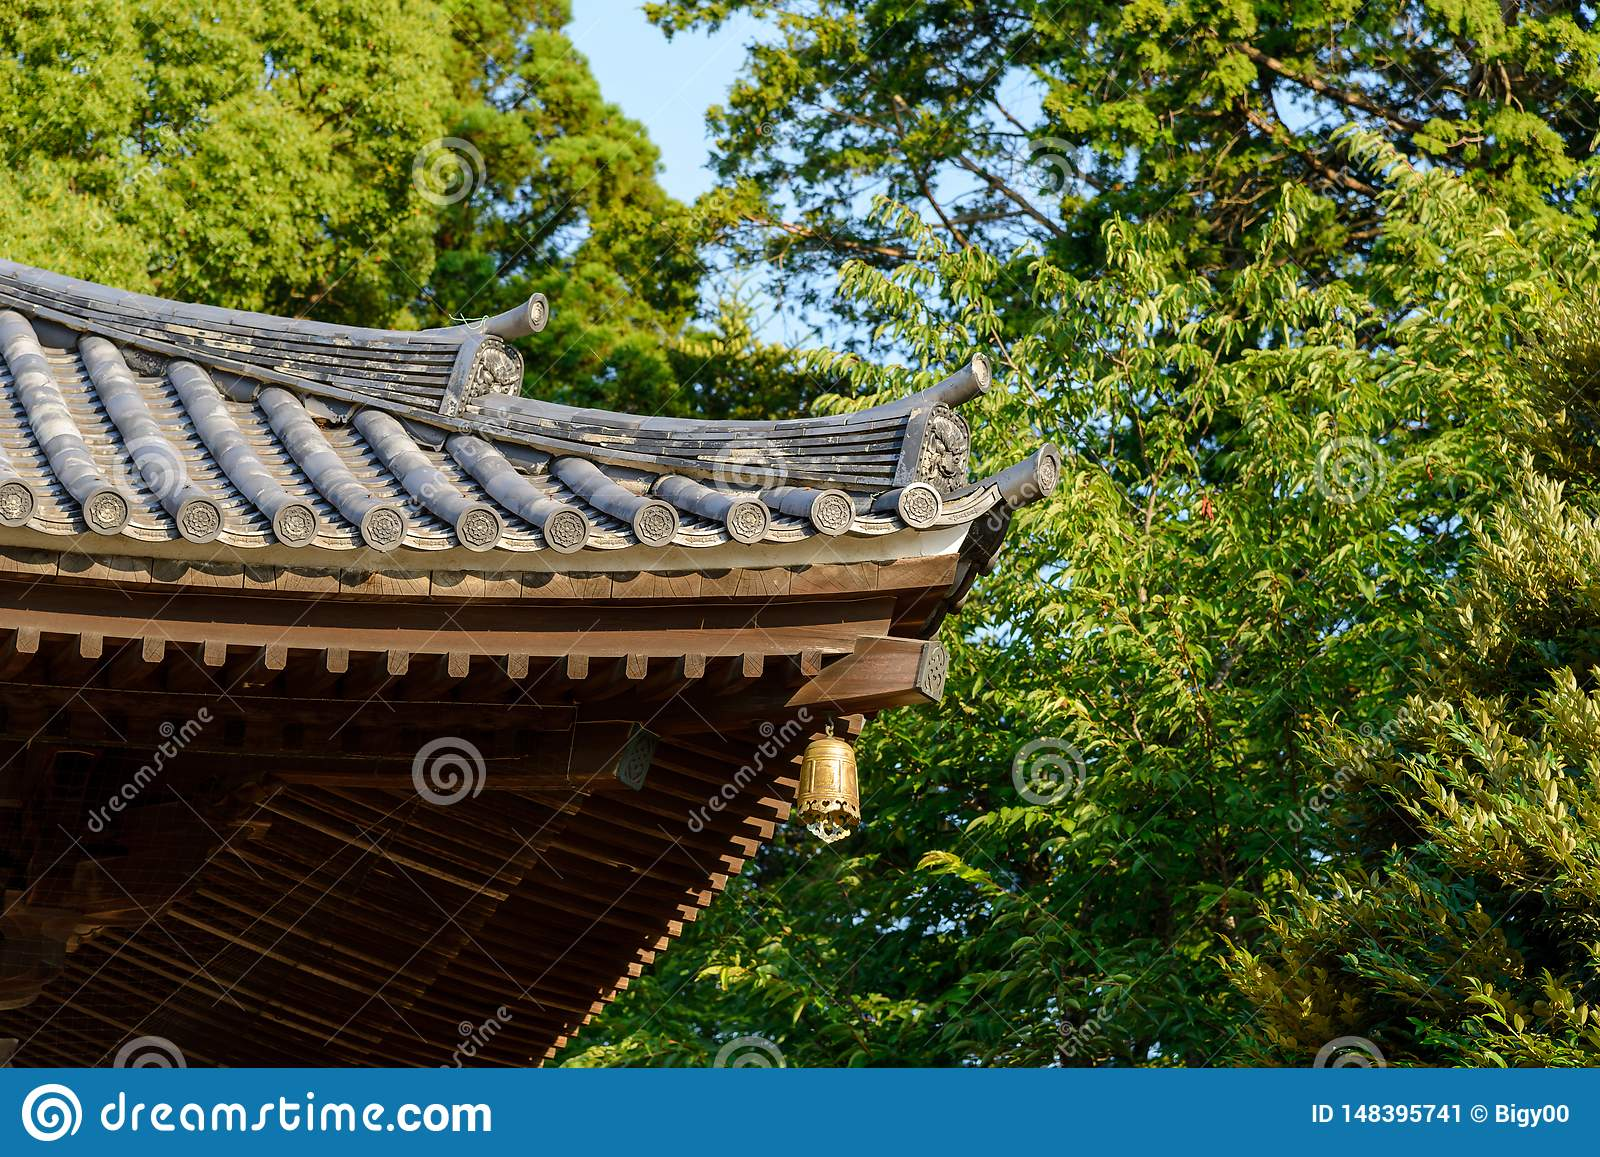 Traditional Japanese Temple Or Shrine Roof With Ancient Bell Japan Stock Image Image Of Design Tourism 148395741